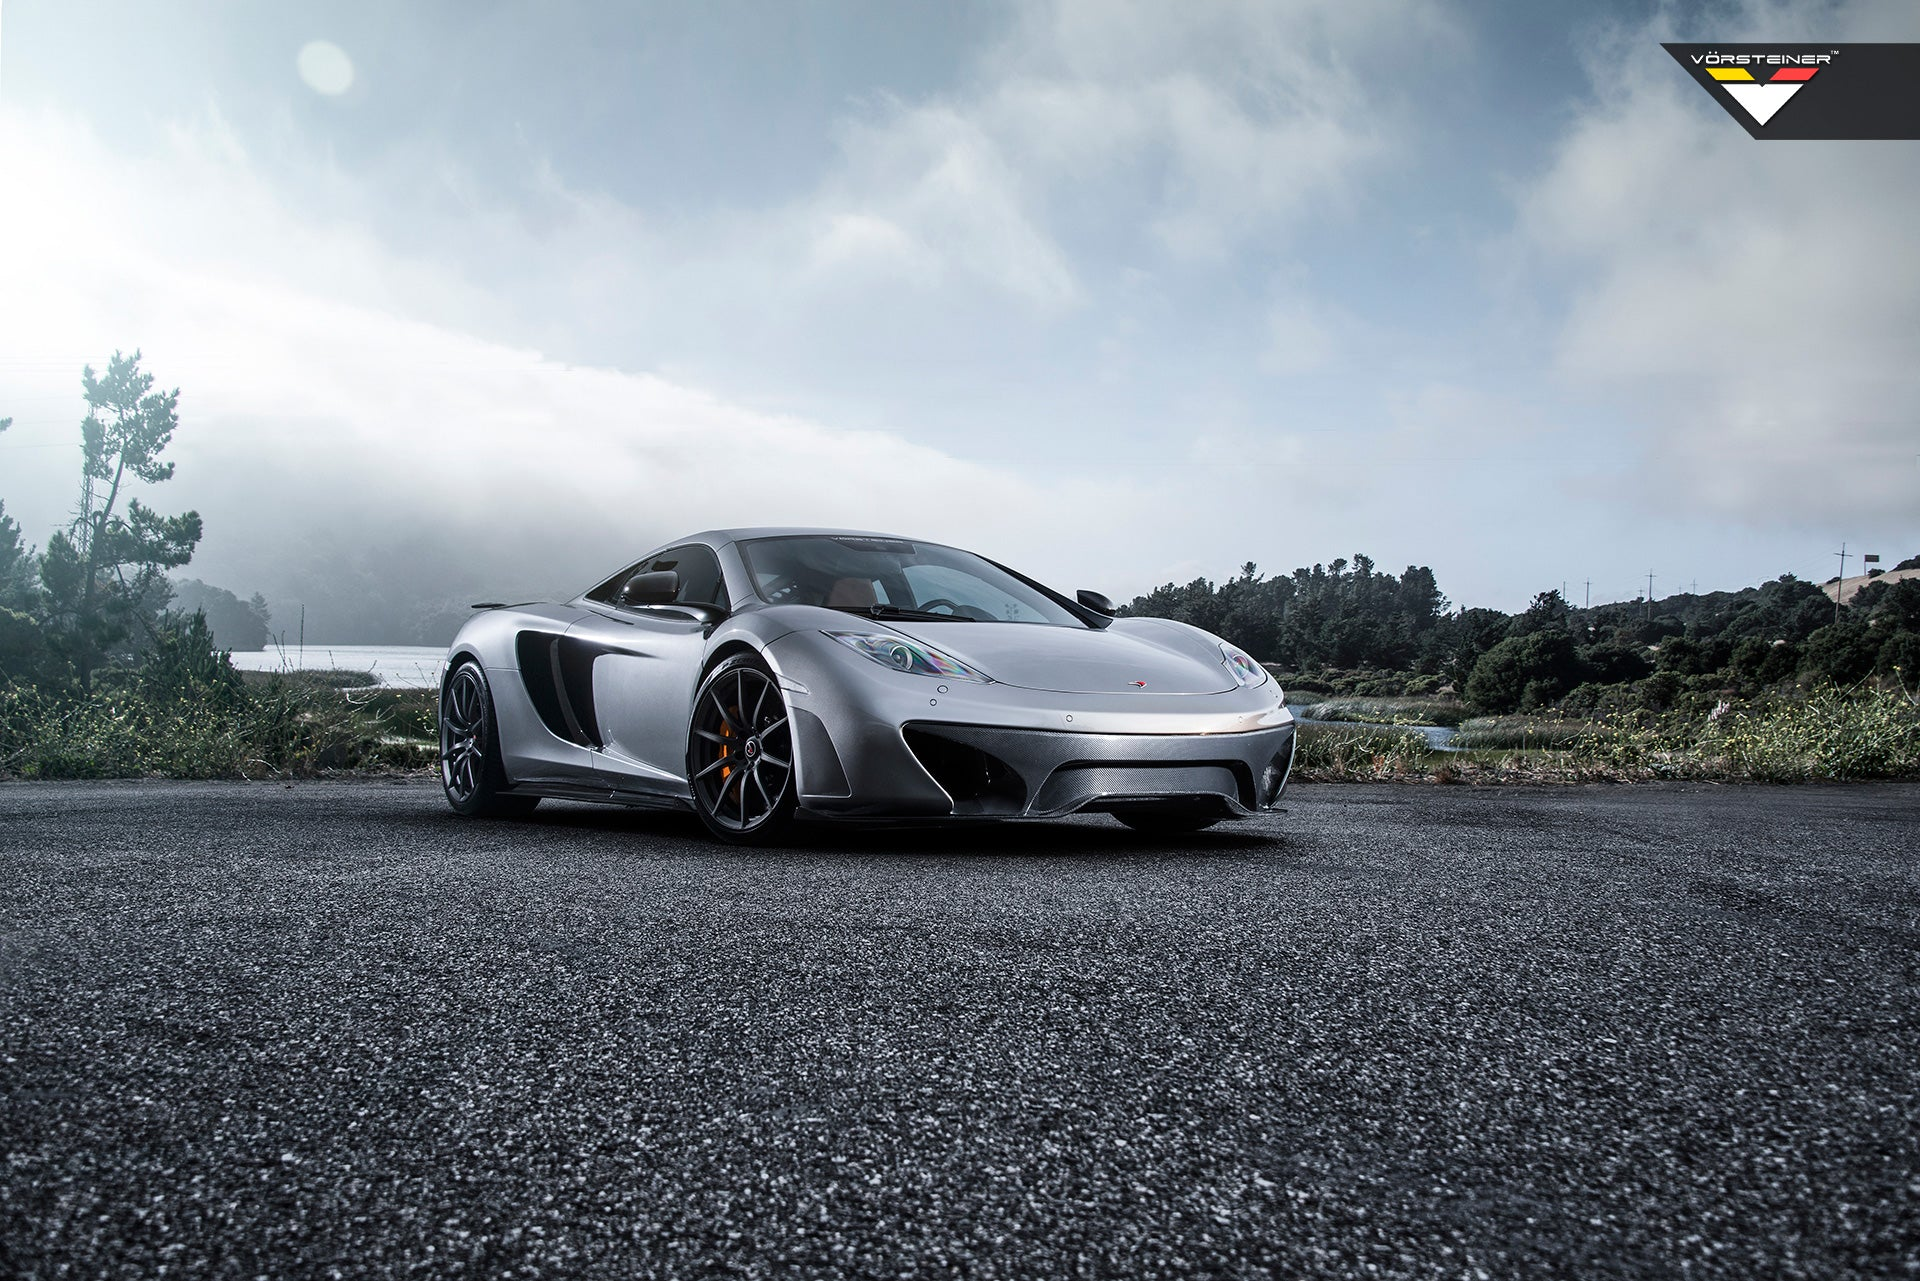 MCLAREN MP4-12c VORSTEINER SIDE BLADES